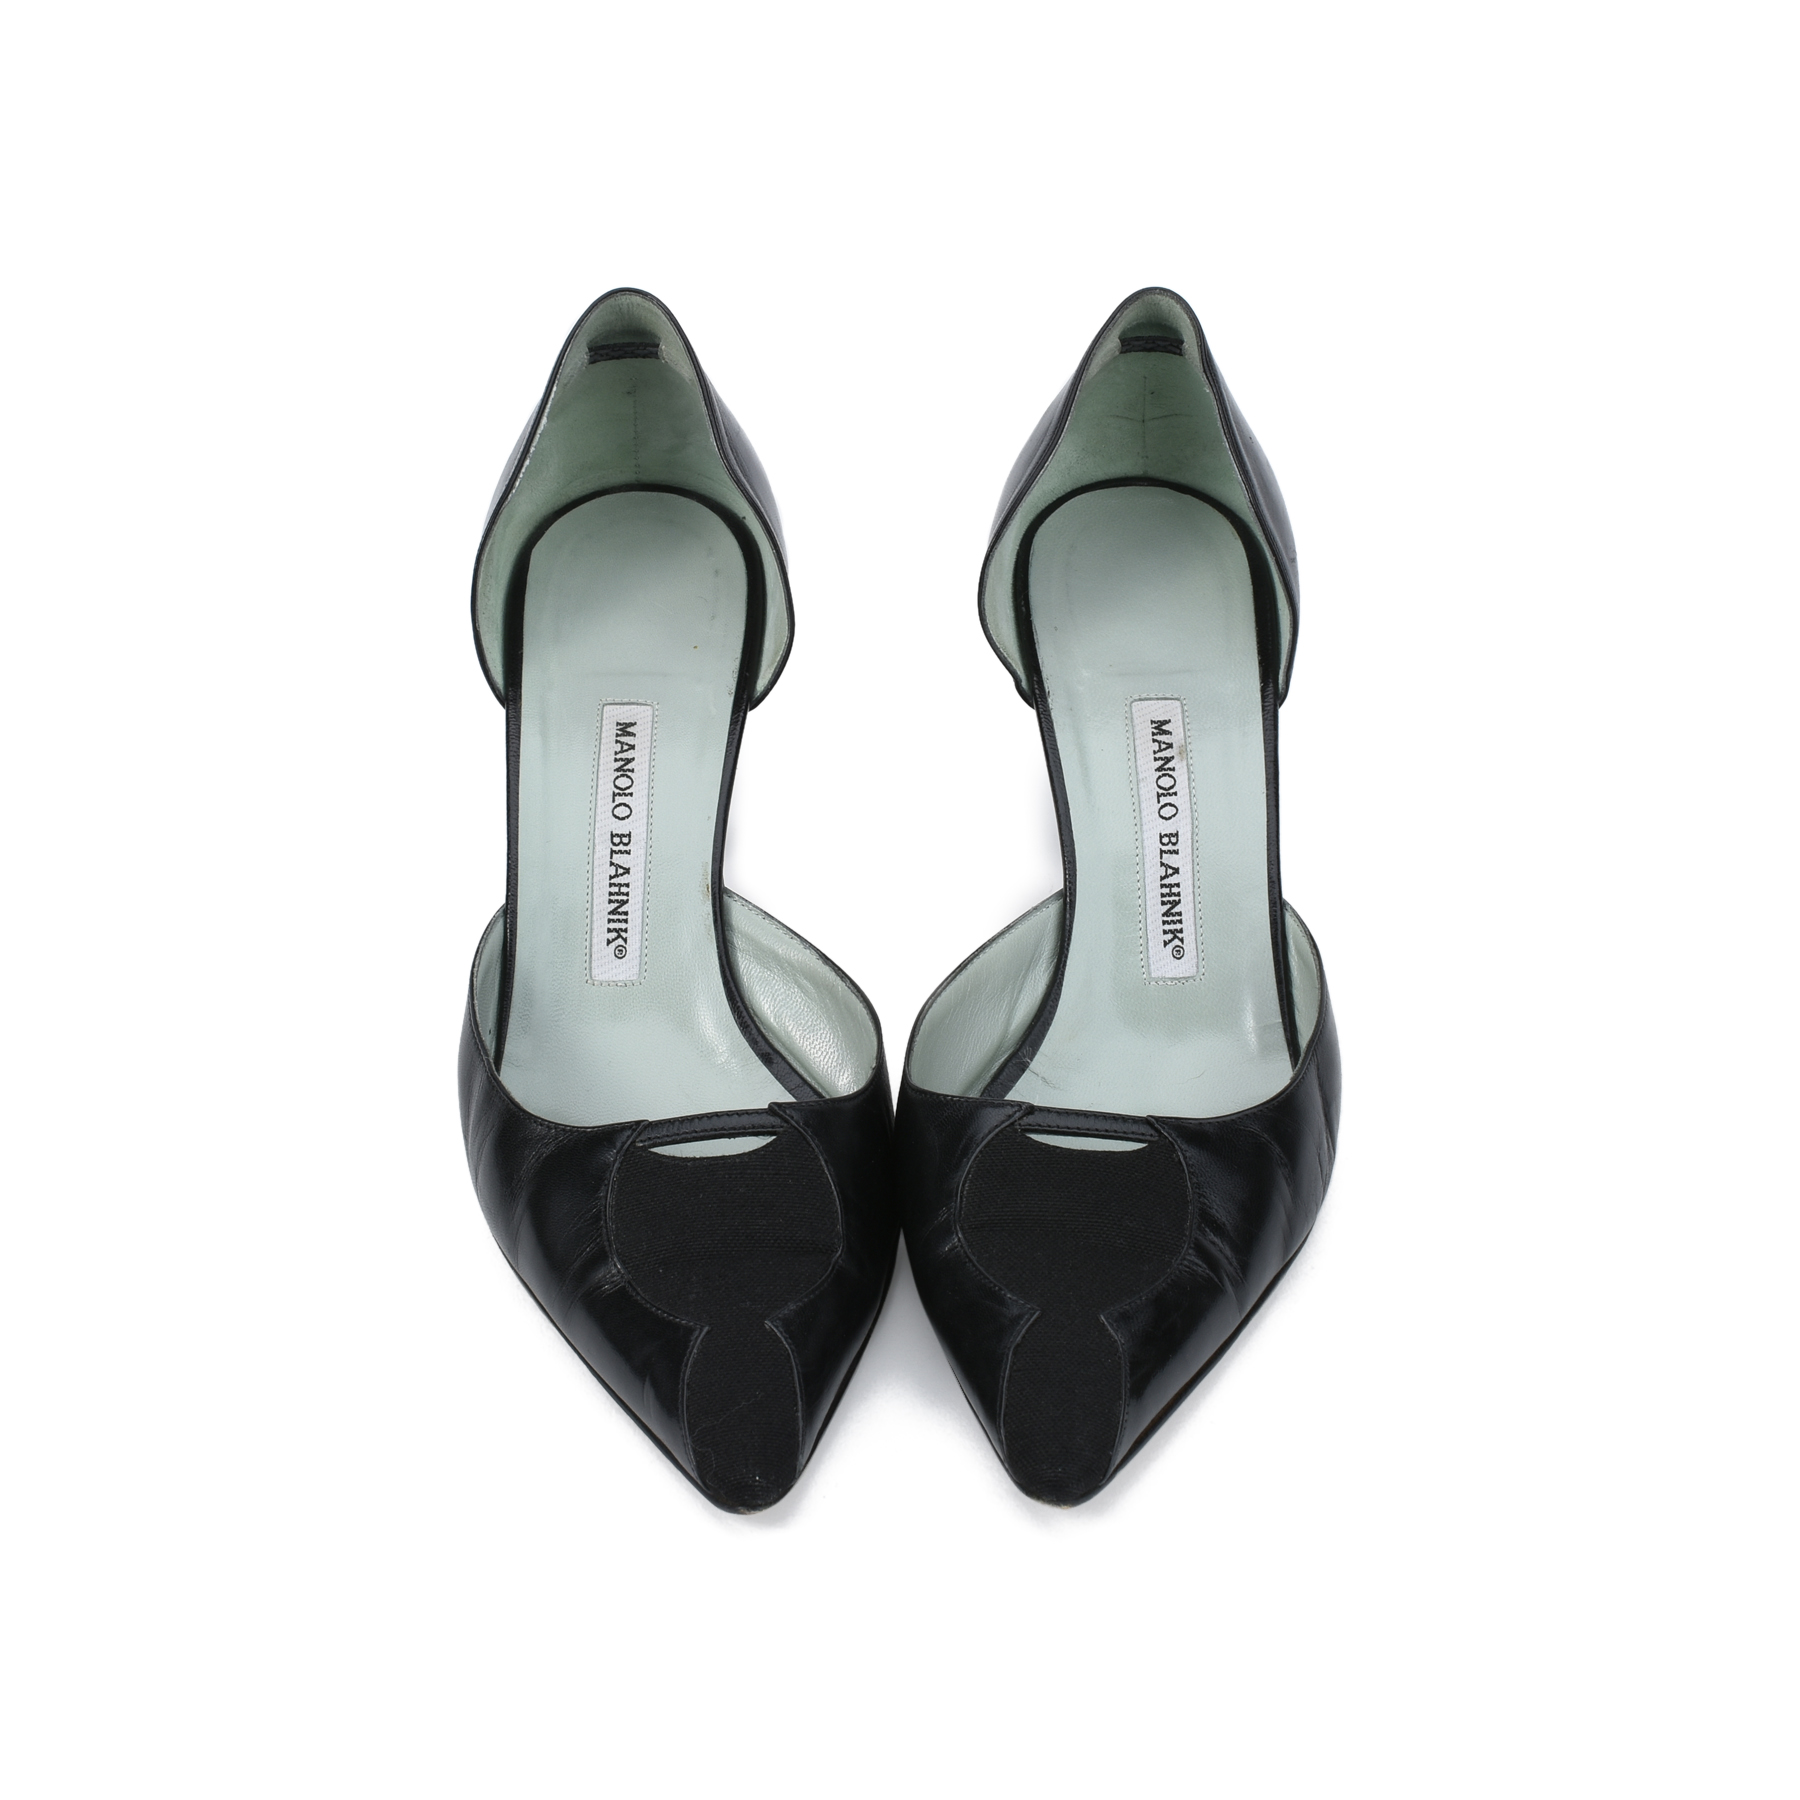 bb6a6273412 Authentic Second Hand Manolo Blahnik D Orsay Pumps (PSS-393-00031 ...